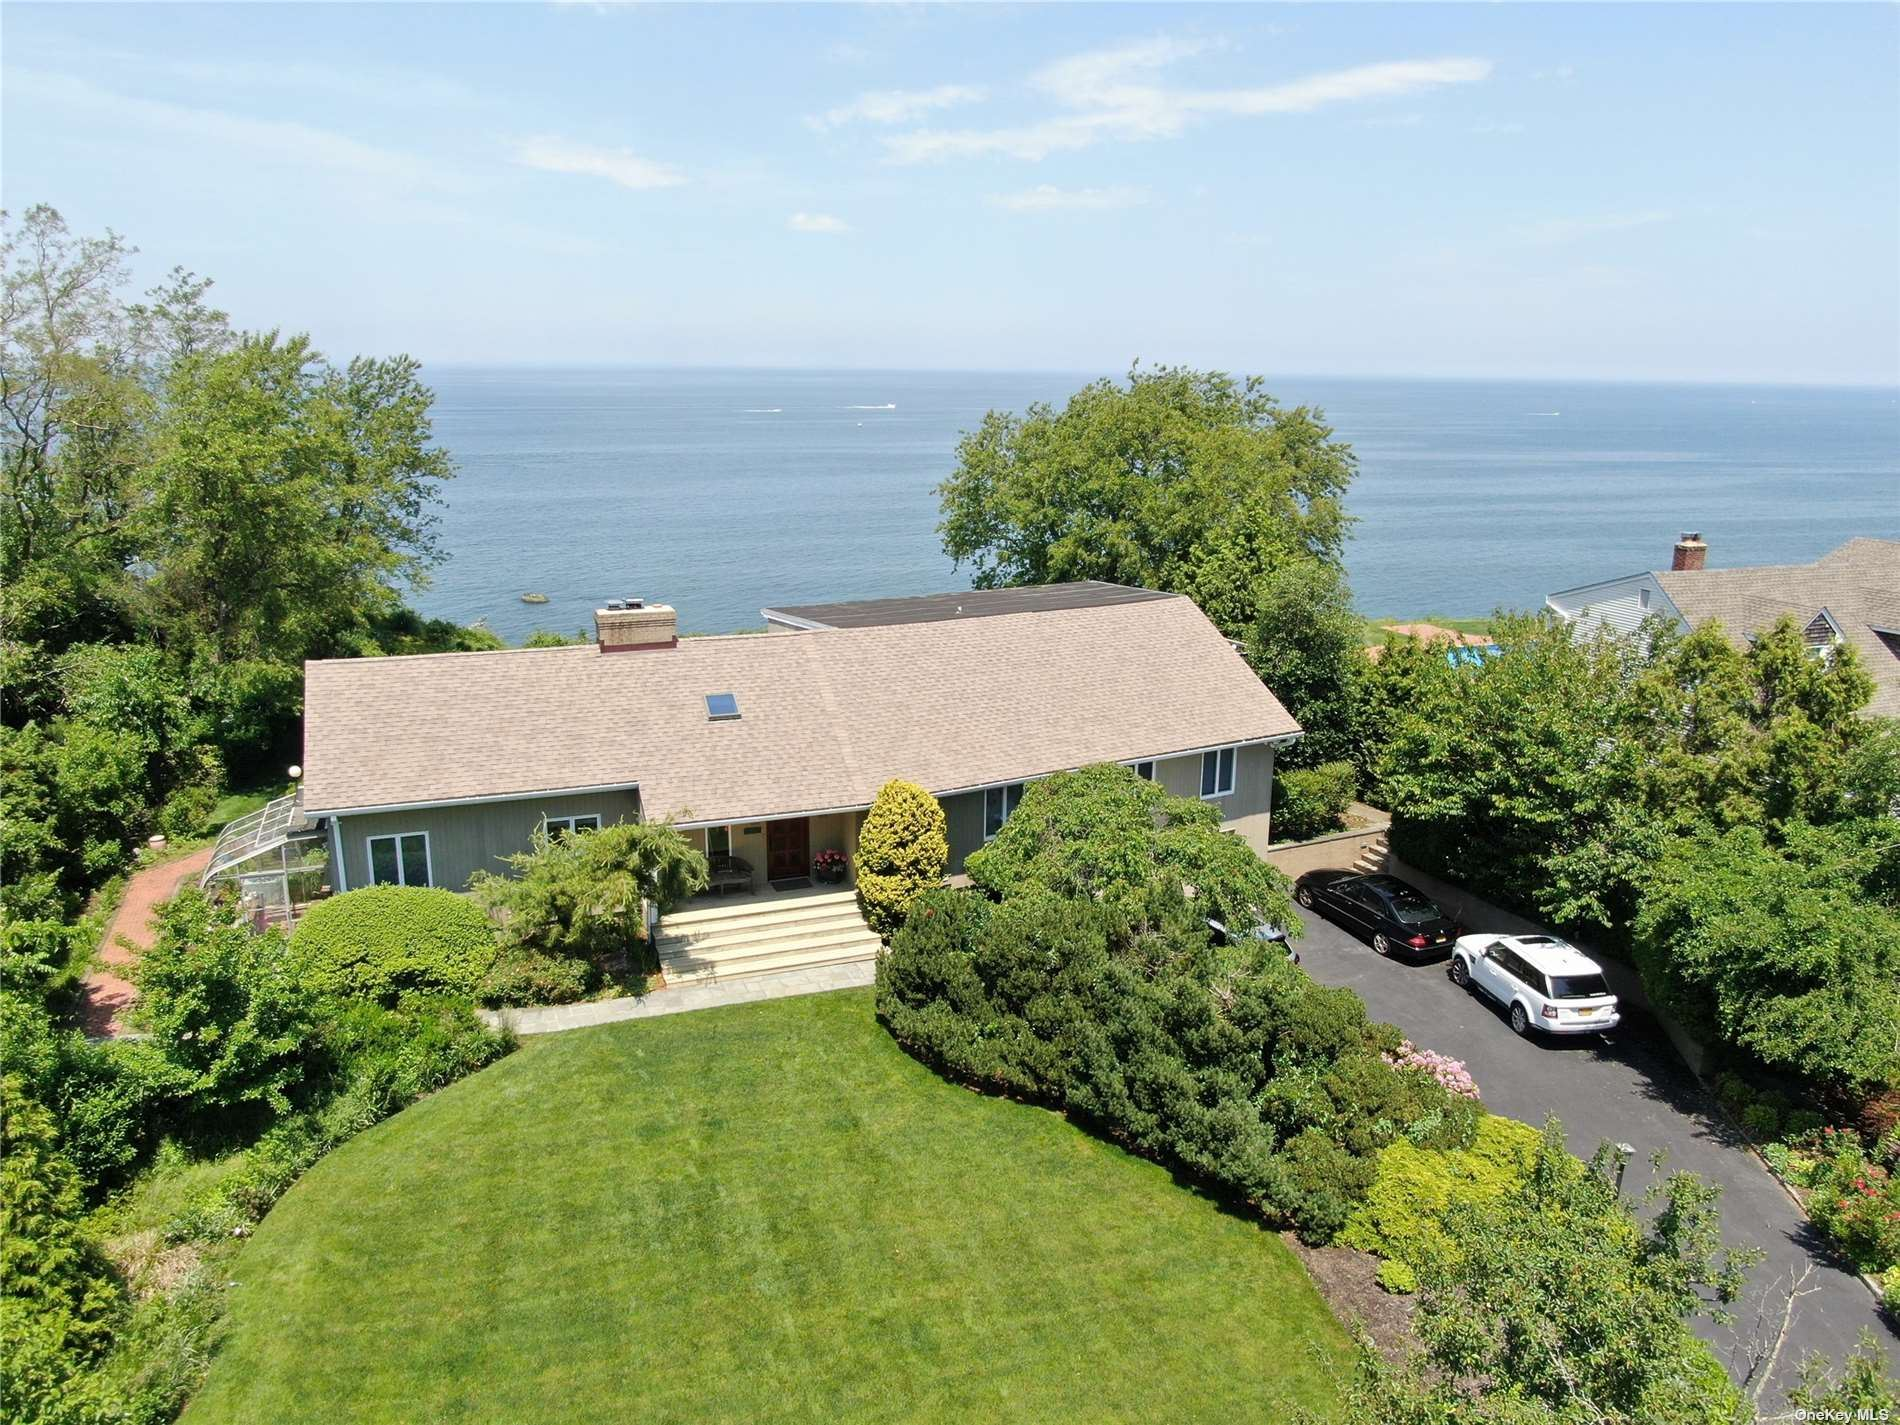 11 Seacliff Lane, Miller Place, NY 11764 - MLS#: 3329237